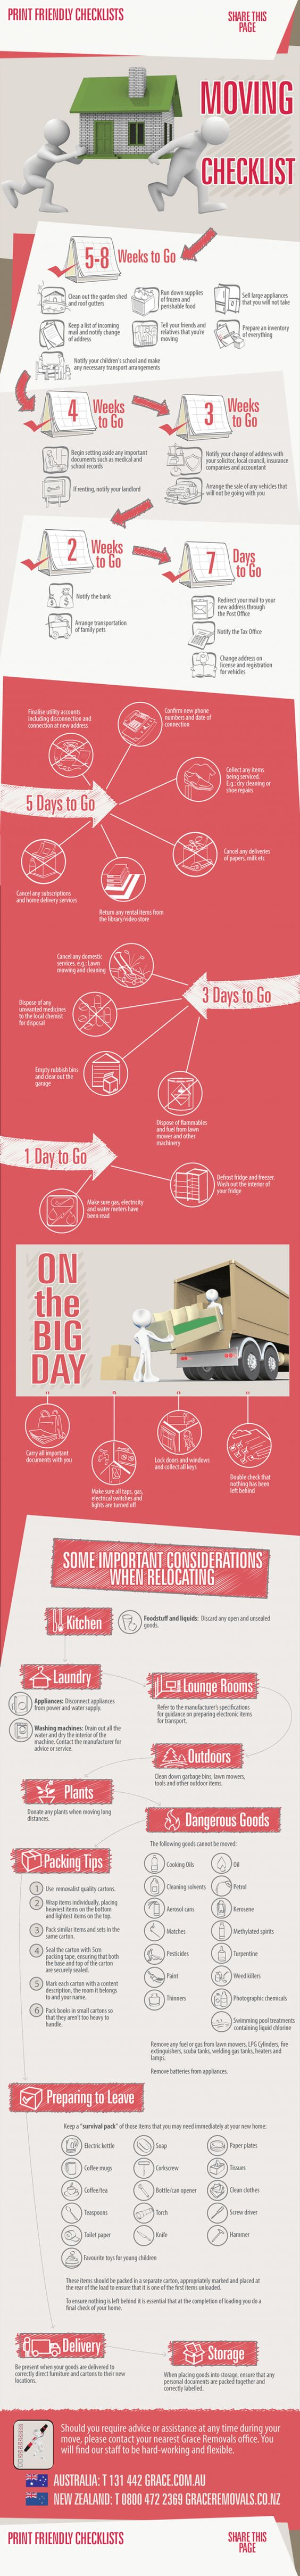 Moving Checklist [Infographic] - Few things in life seem to be able to cause more stress, chaos, and frustration (and did we mention stress?) in people than moving day. It seems like no matter how much prep and planning goes into making sure everything goes smoothly in moving to a new location, something always goes missing or is forgotten, or something goes wrong...